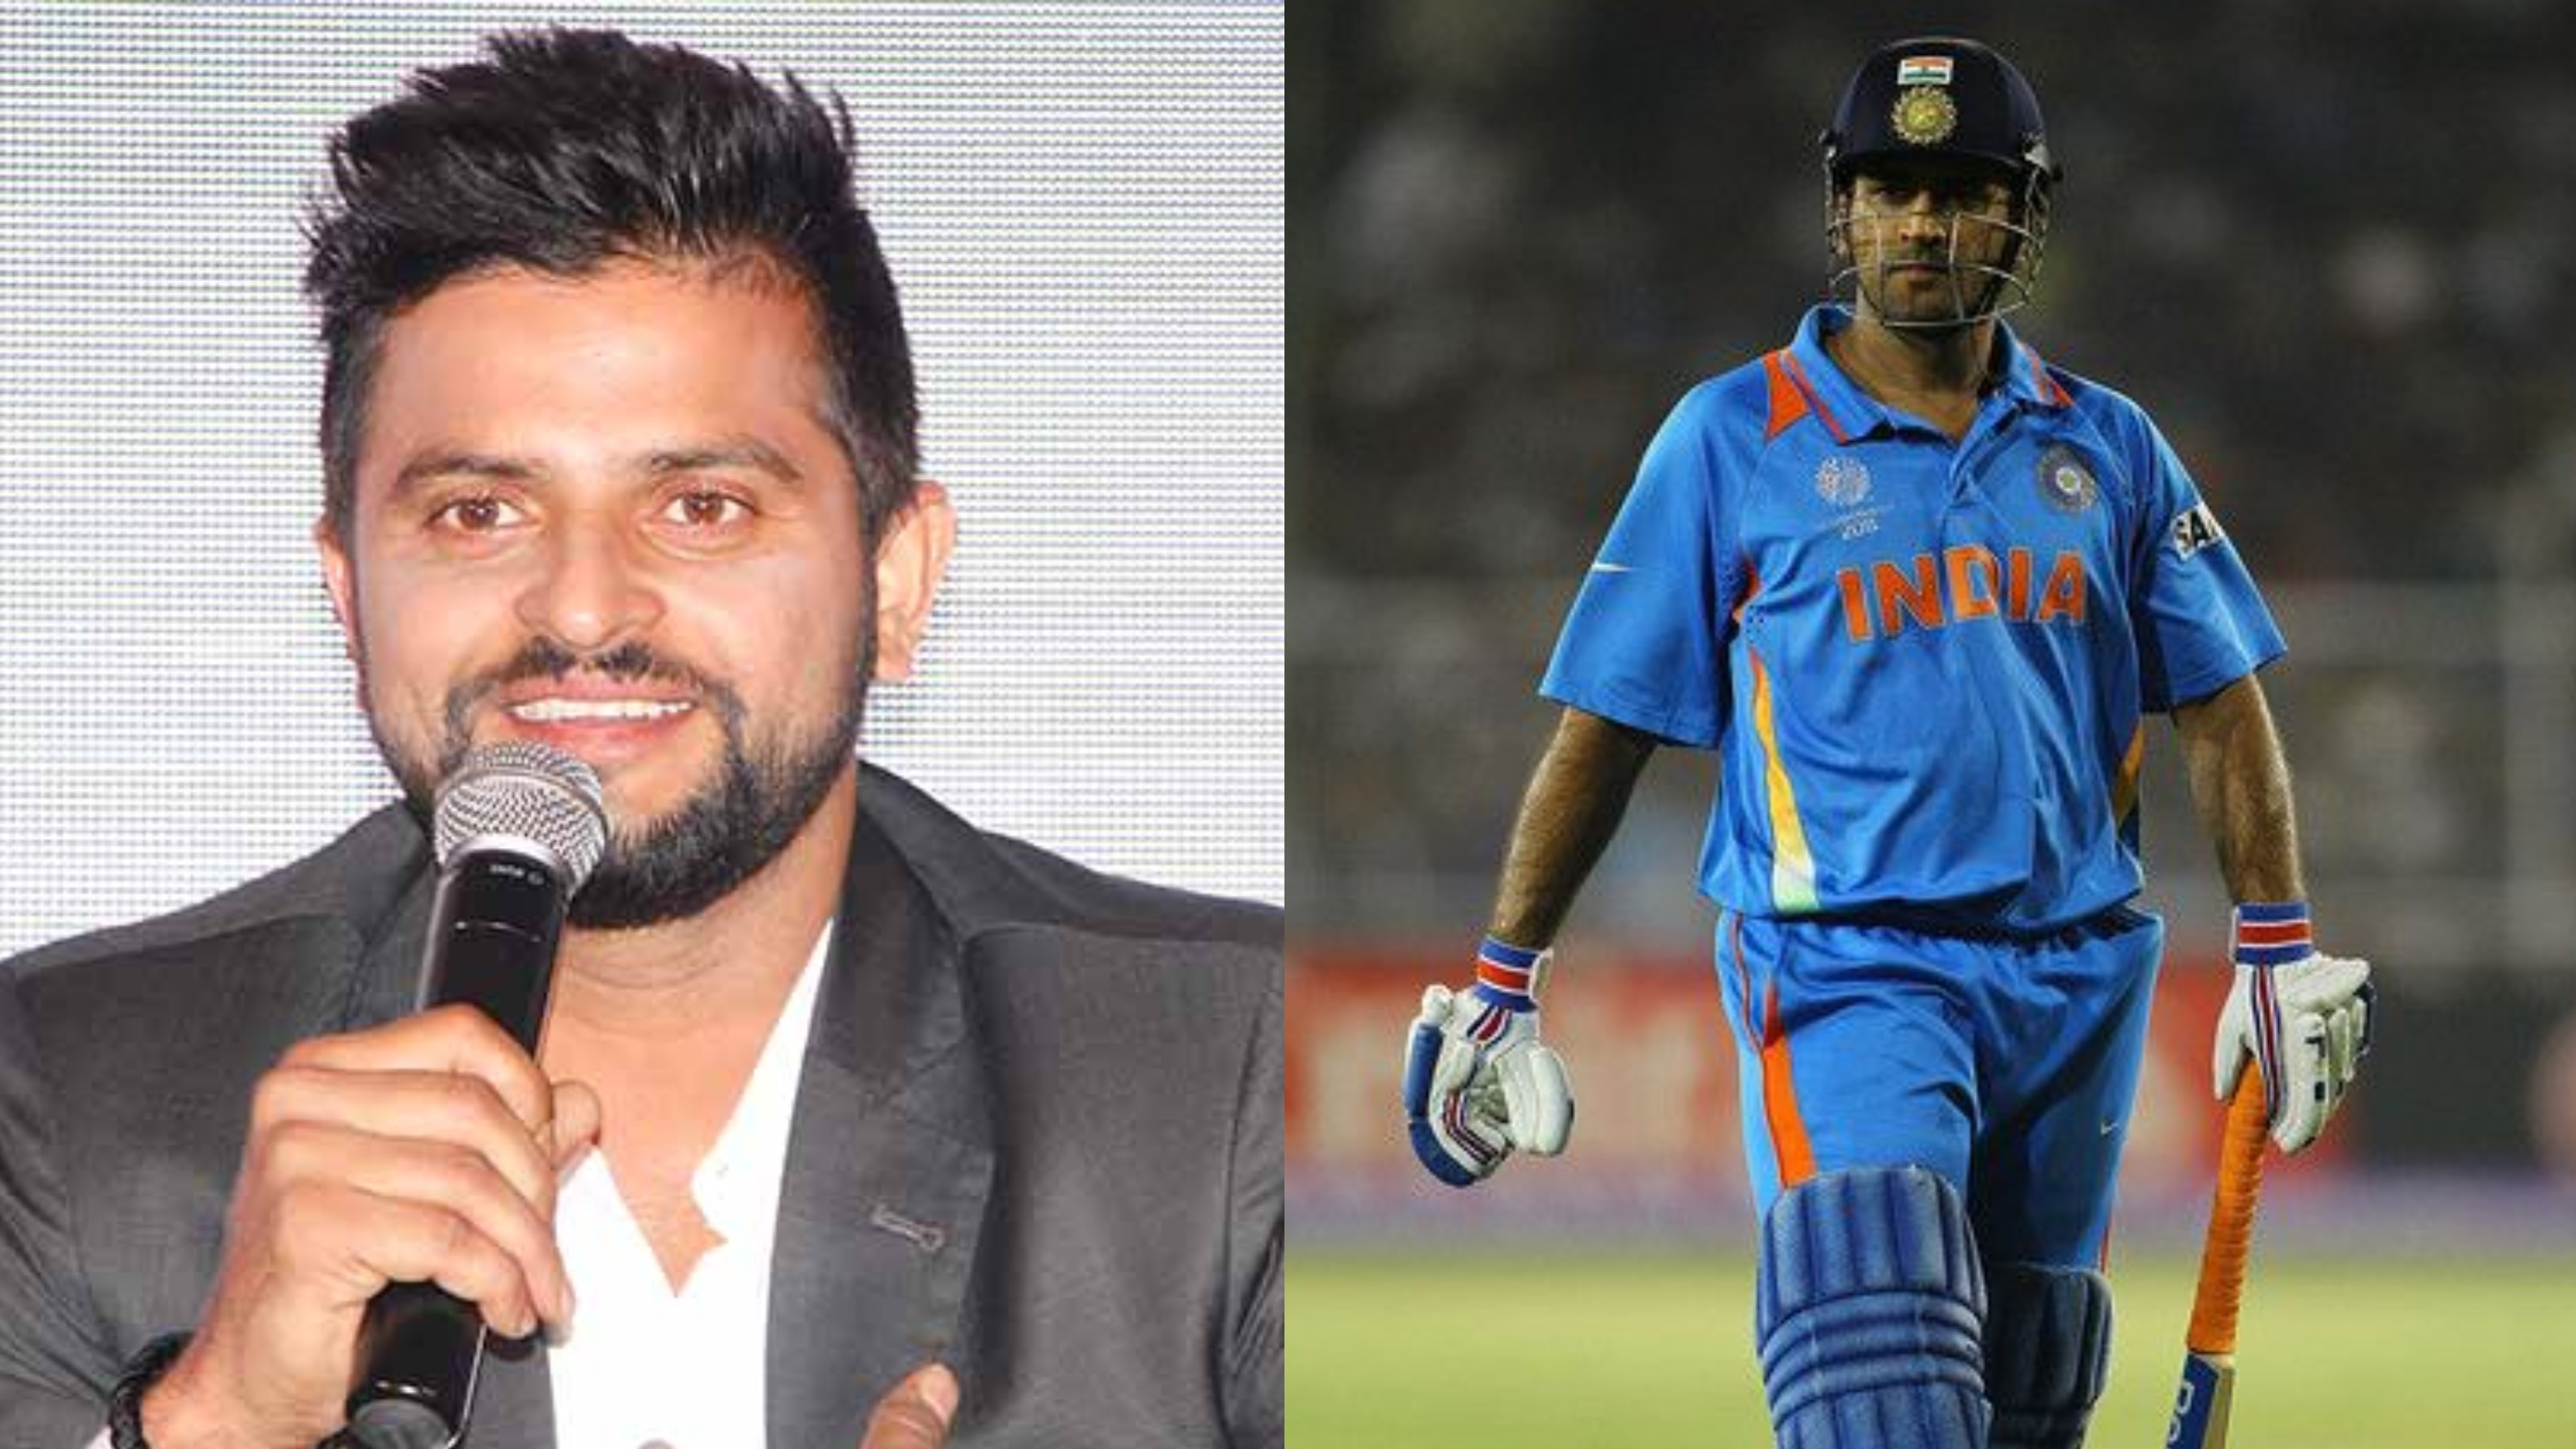 Suresh Raina recalls how MS Dhoni's sad face inspired him to win 2011 World Cup quarter-final for India